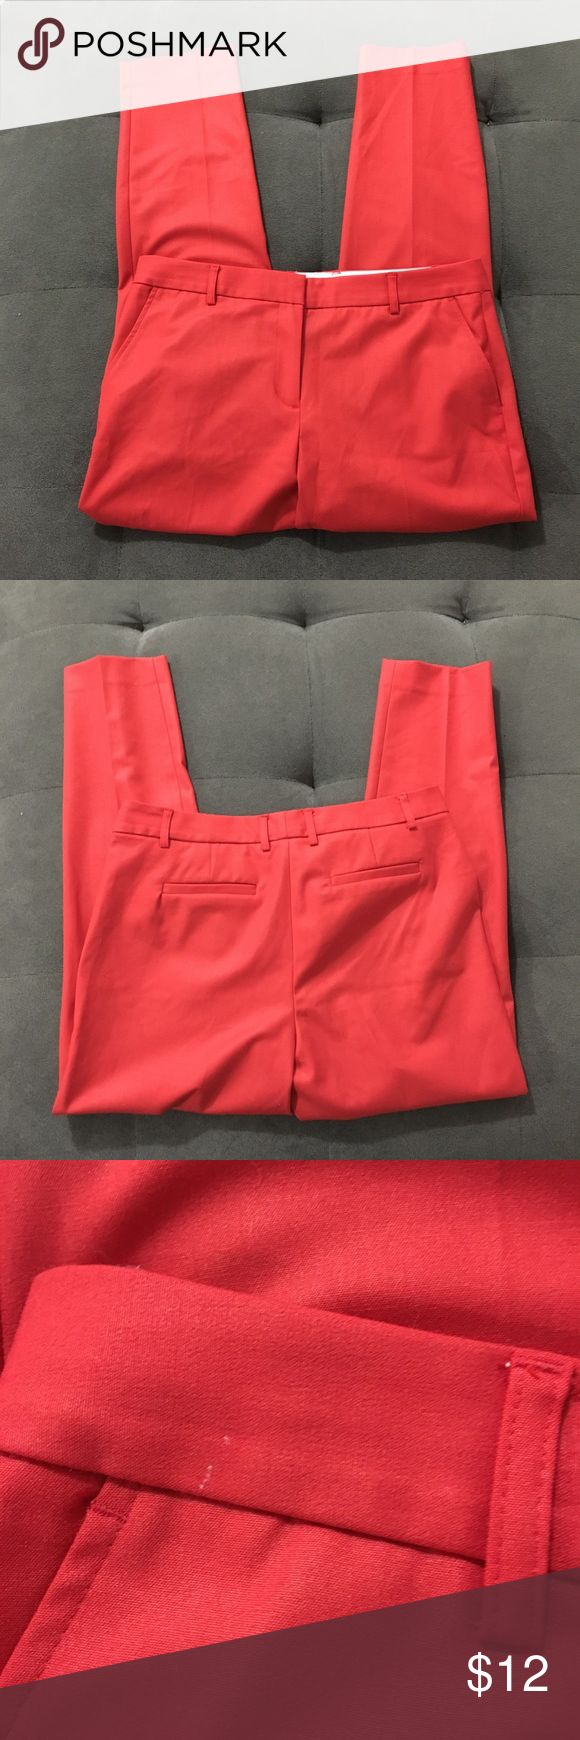 """Jones New York petite stretch dress pants Jones New York petite stretch dress pants  About 9 1/2"""" front rise About 16"""" waist (laying flat) About 27"""" inseam  Good pre-loved condition. Look at pics of wear around waist, tag is cut  Bundle fav items for personal discount. Offers are always welcome, too! No trades. Thank you! (12)  Tags: work, career, casual, interview, red Jones New York Pants Trousers"""